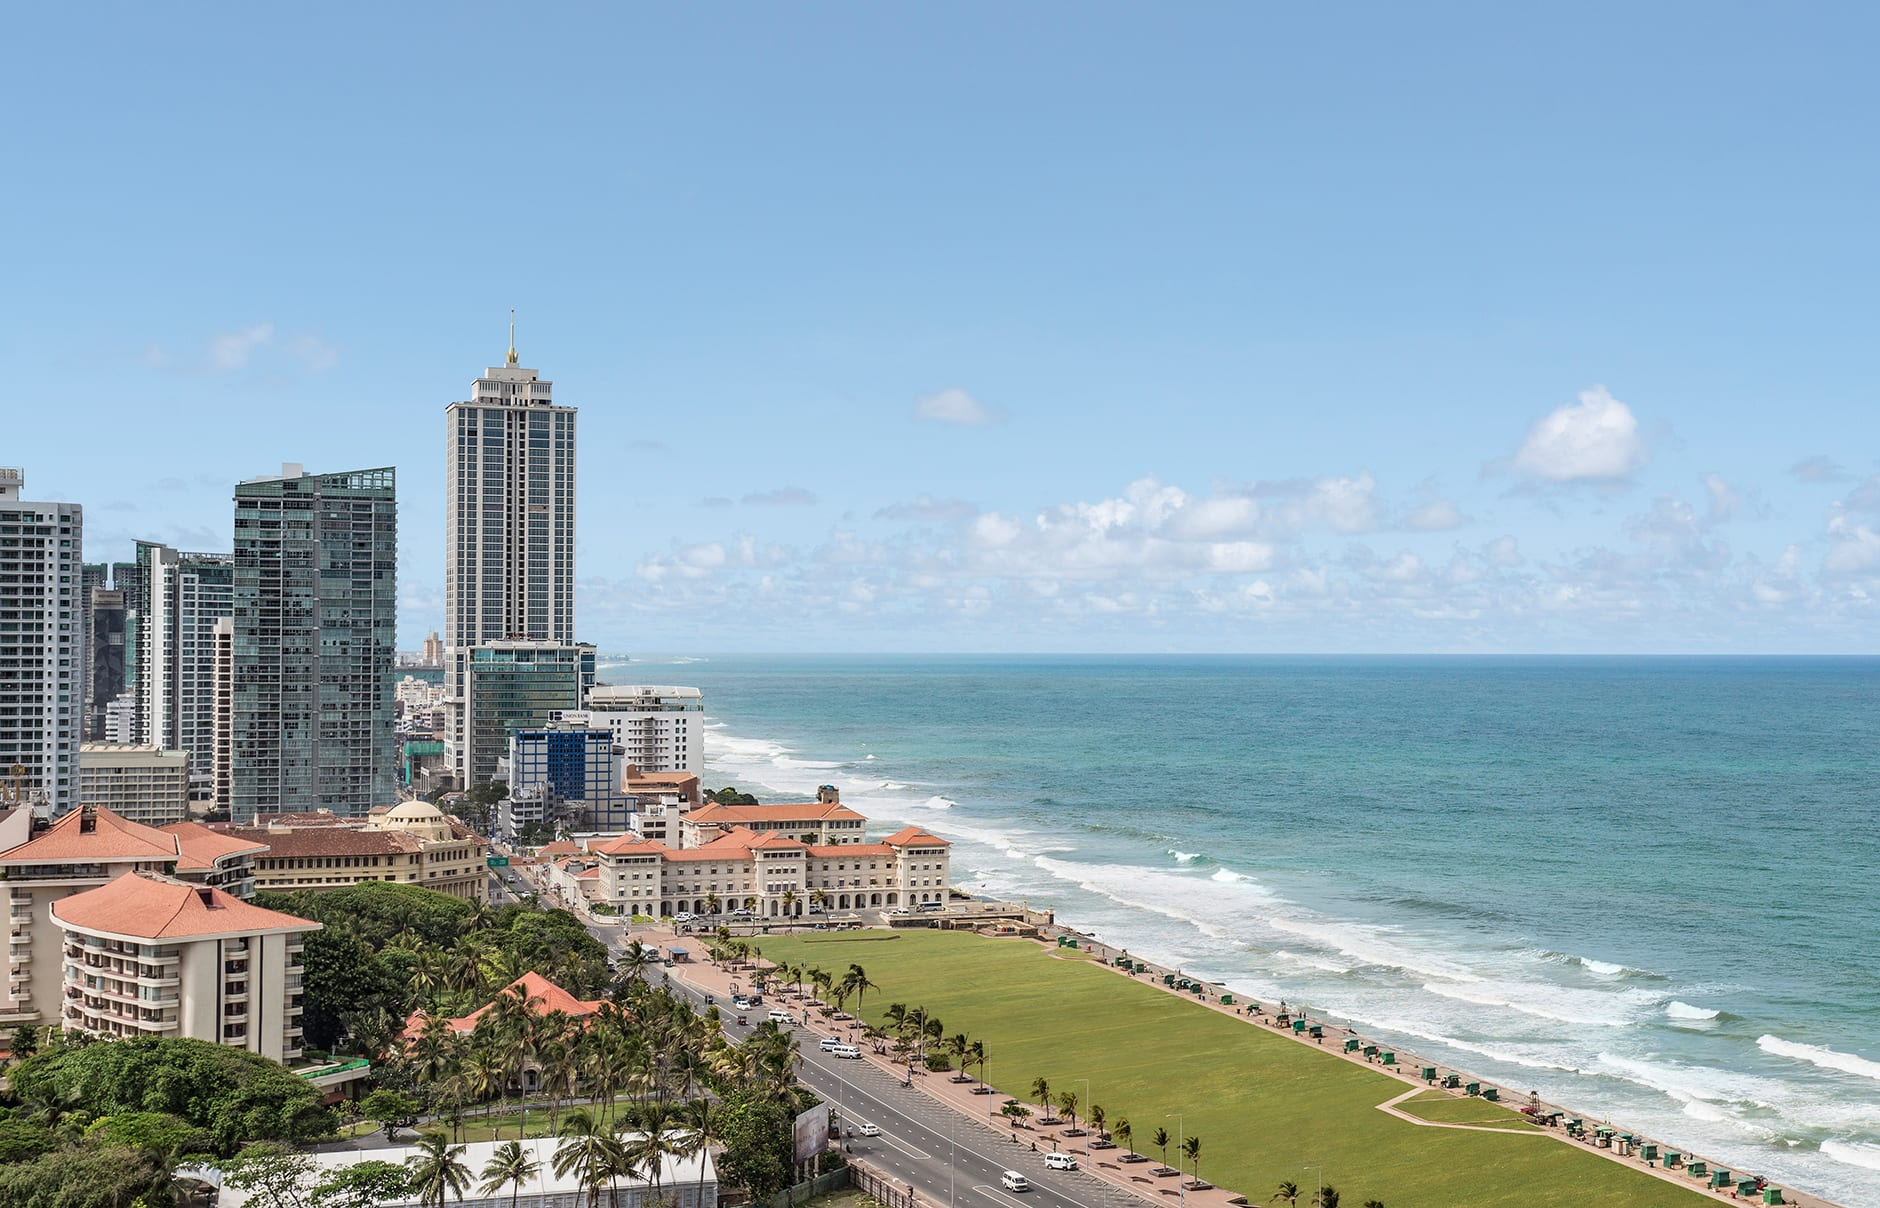 Promenade. Shangri-La Hotel Colombo, Sri Lanka. Hotel Review by TravelPlusStyle. Photo © Shangri-La